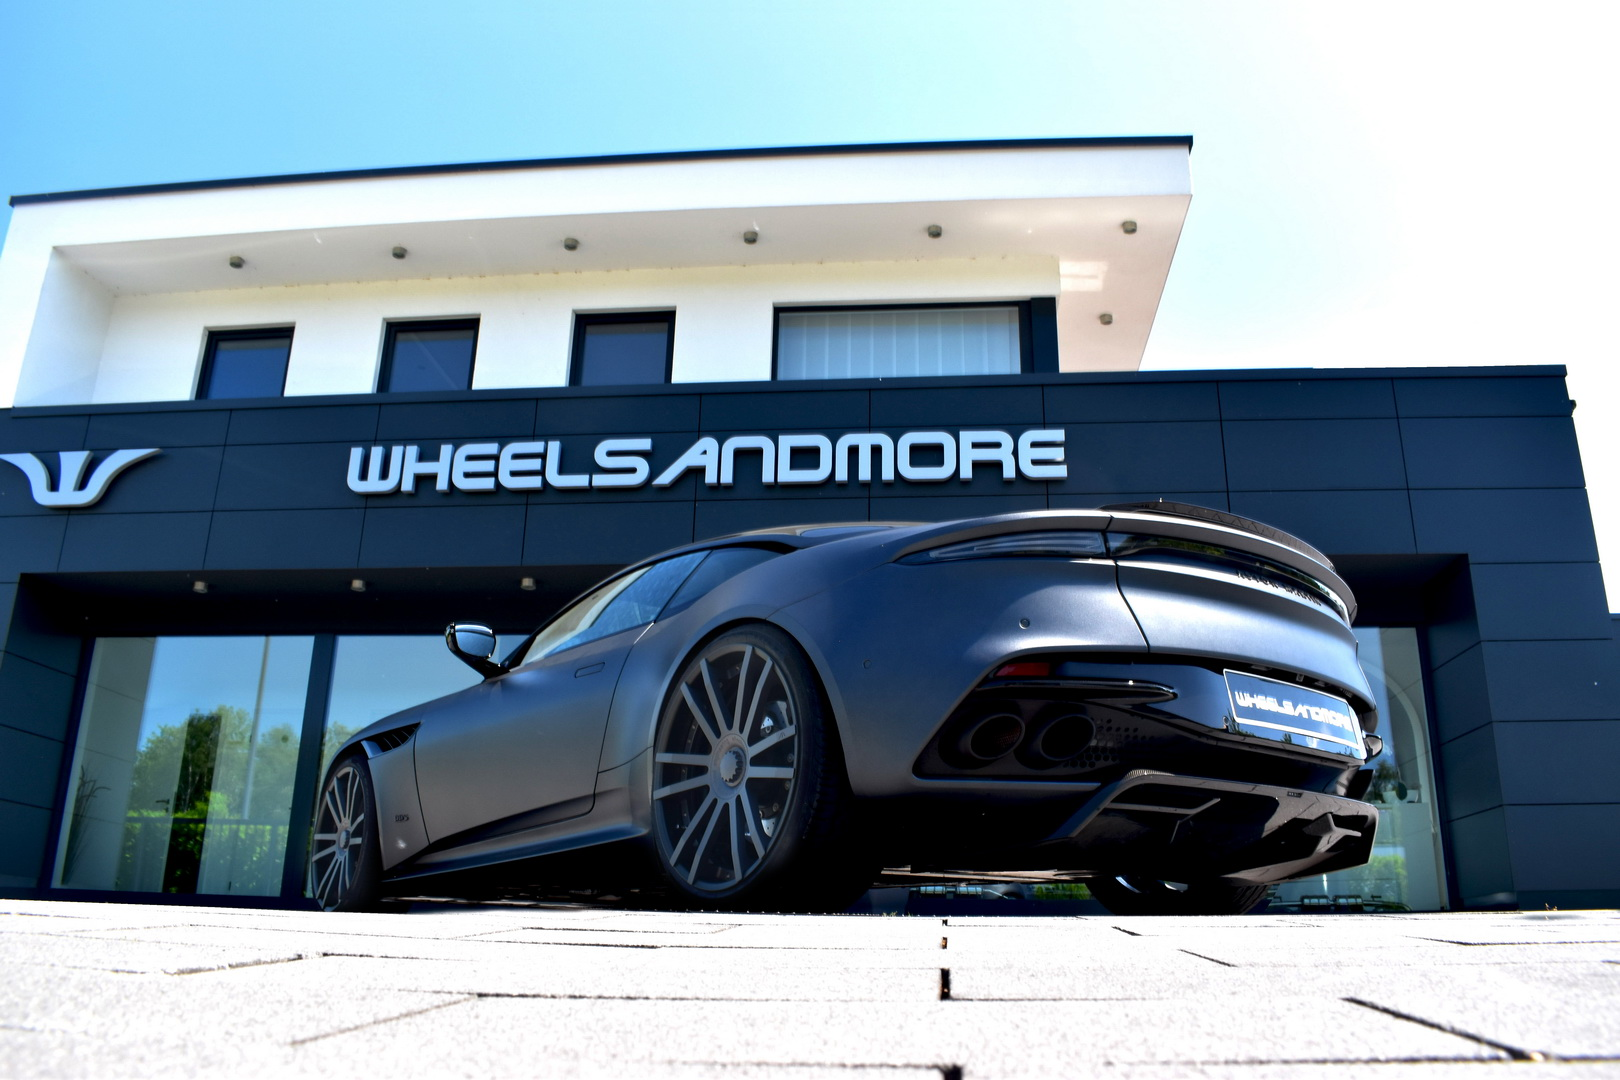 Aston Martin DBS Superleggera by Wheelsandmore